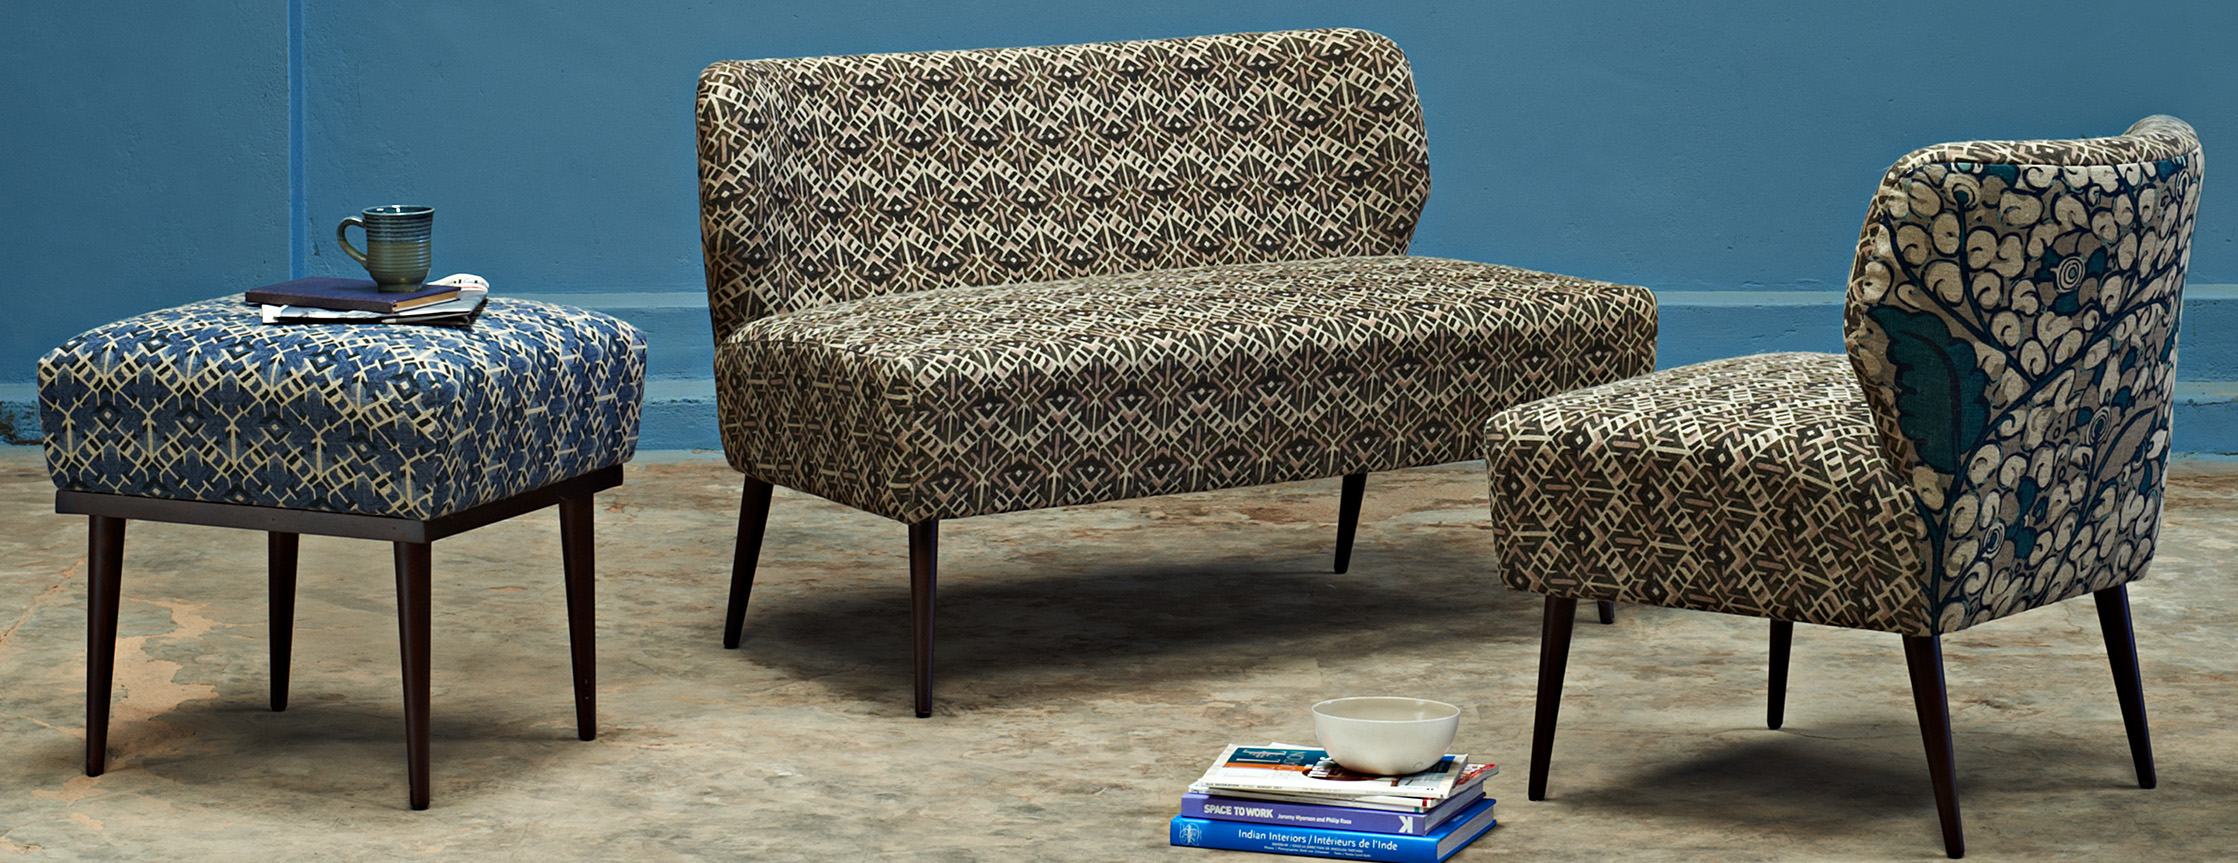 Upholstery Collection Image